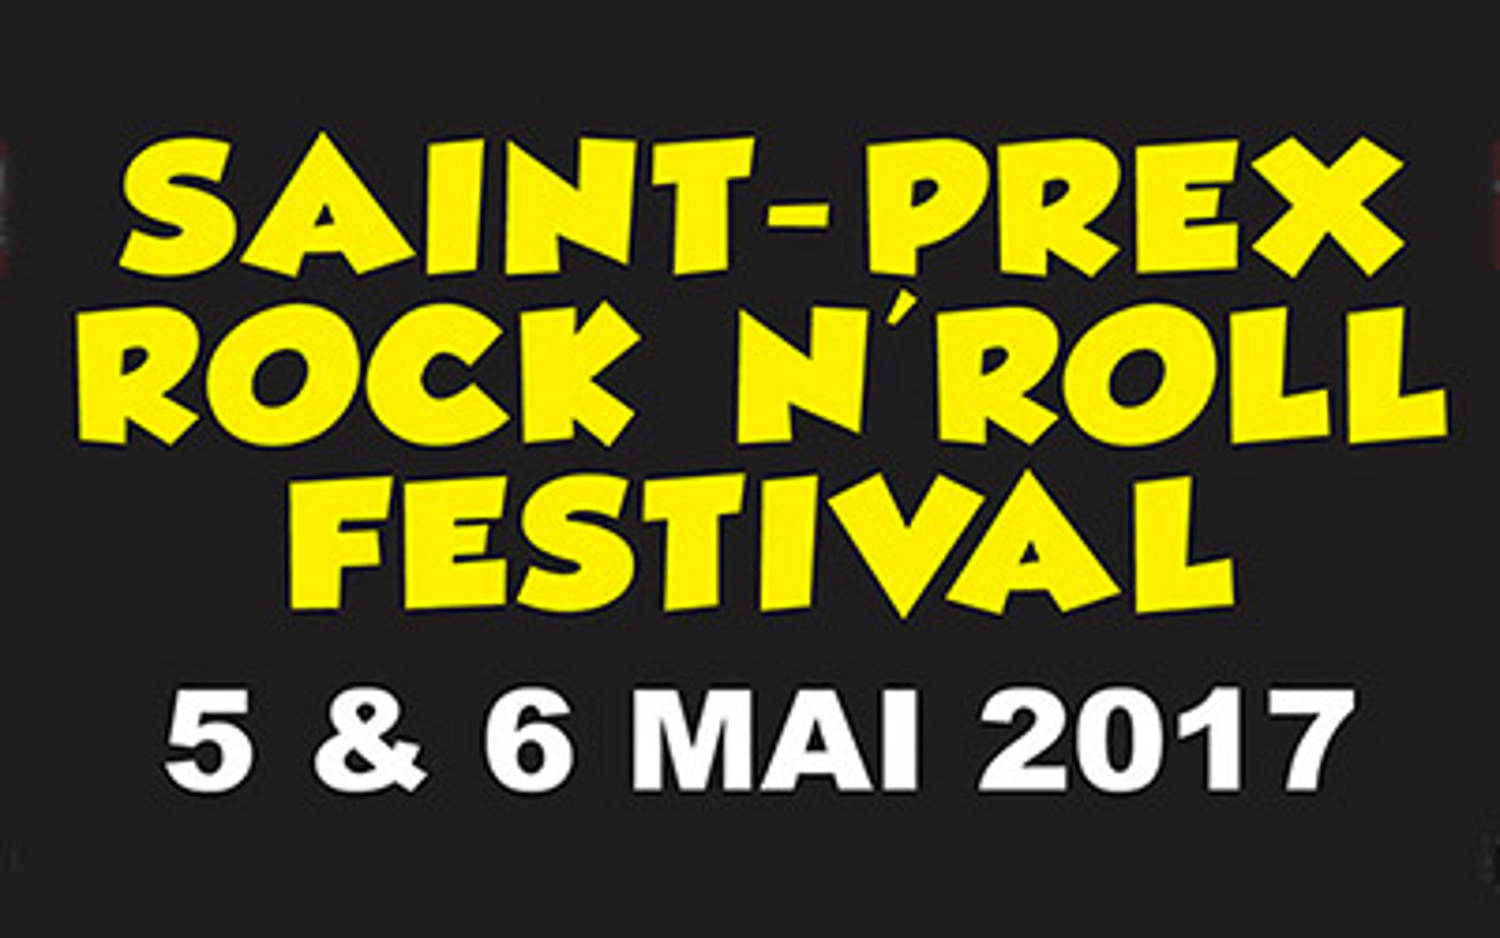 Saint-Prex Rock N'Roll Festival